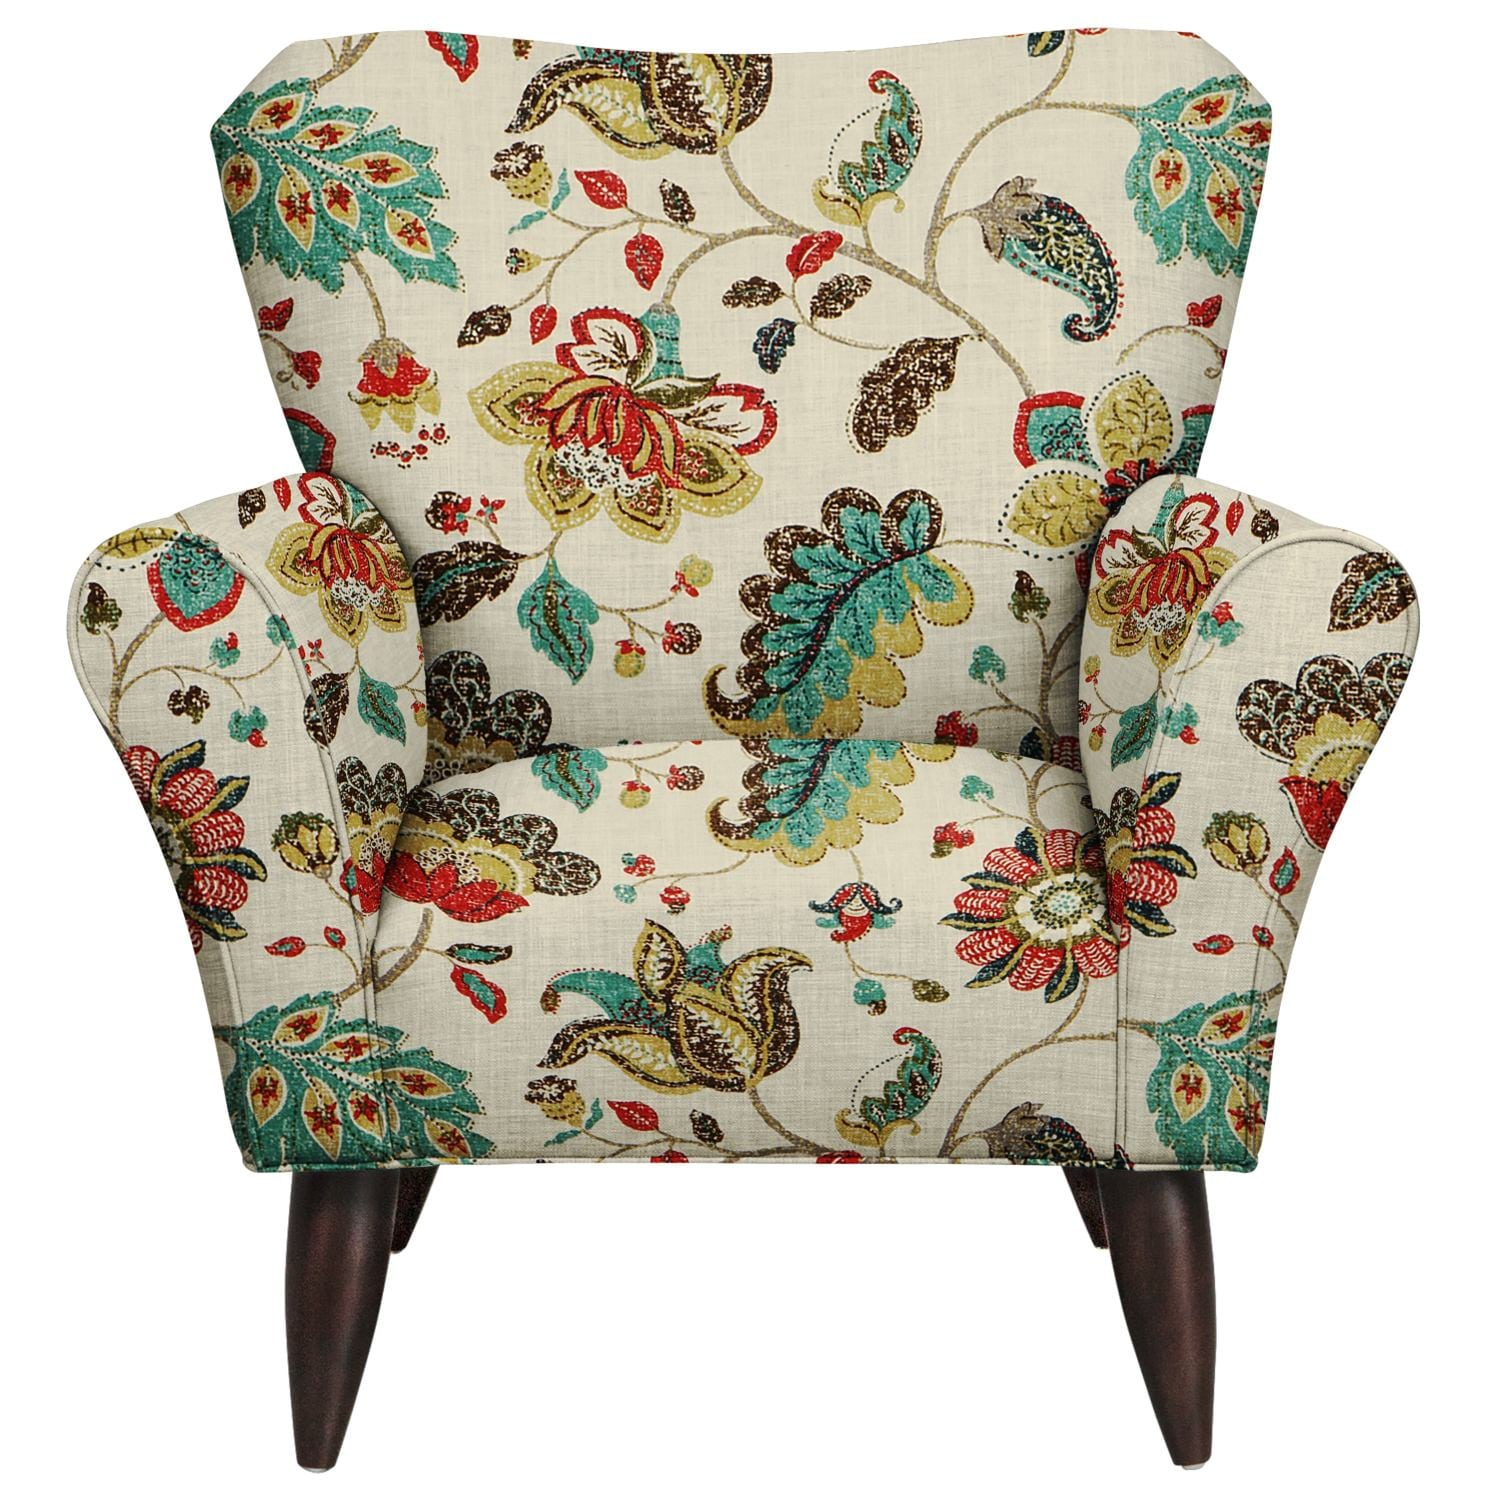 Living Room Furniture - Jessie Chair w/ Spring Mix Poppy Fabric